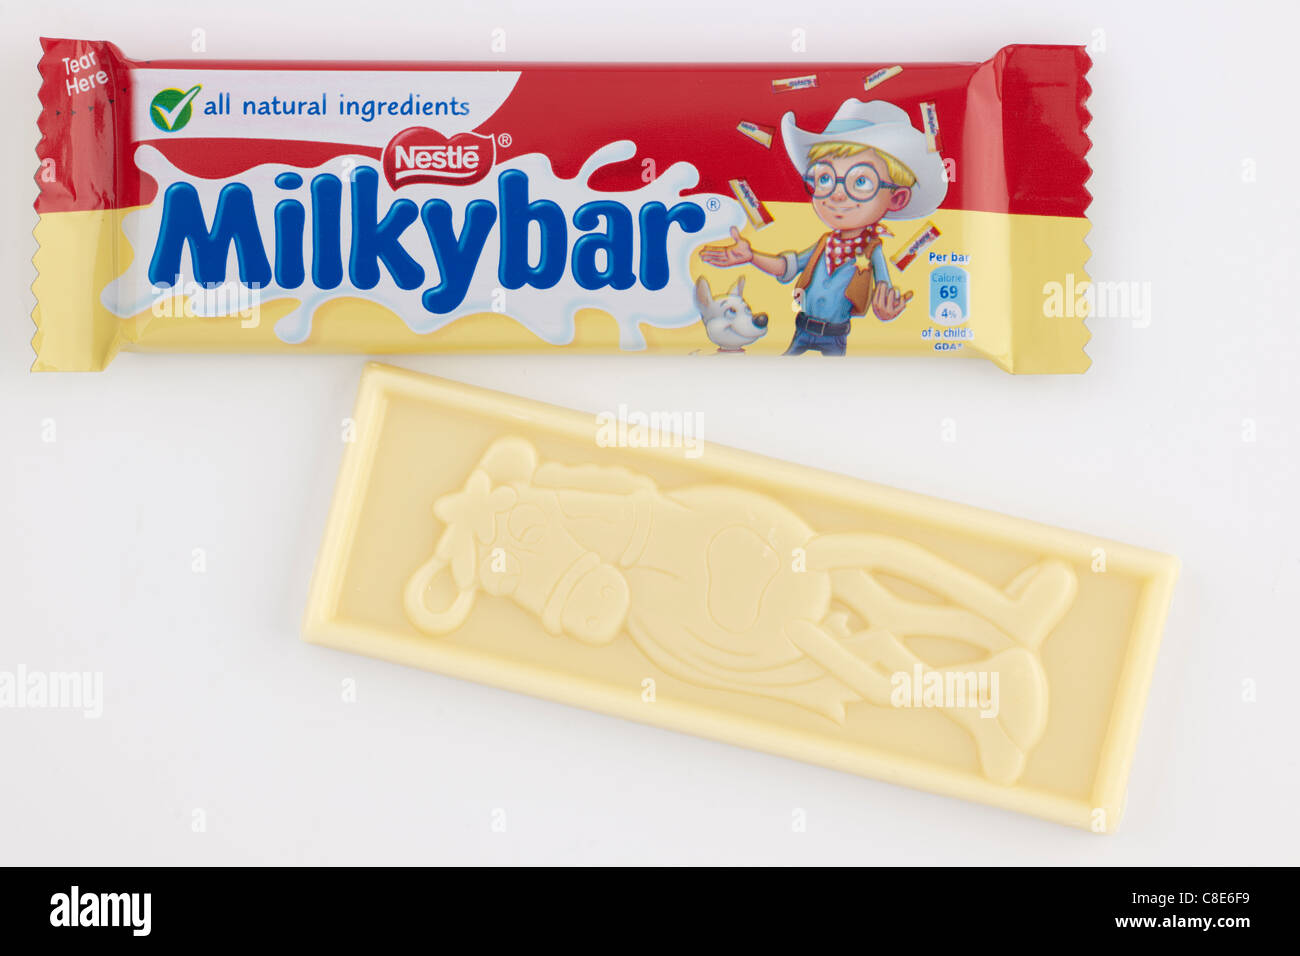 Two Small bars of Nestle Milky Bar white chocolate with a horse character - Stock Image